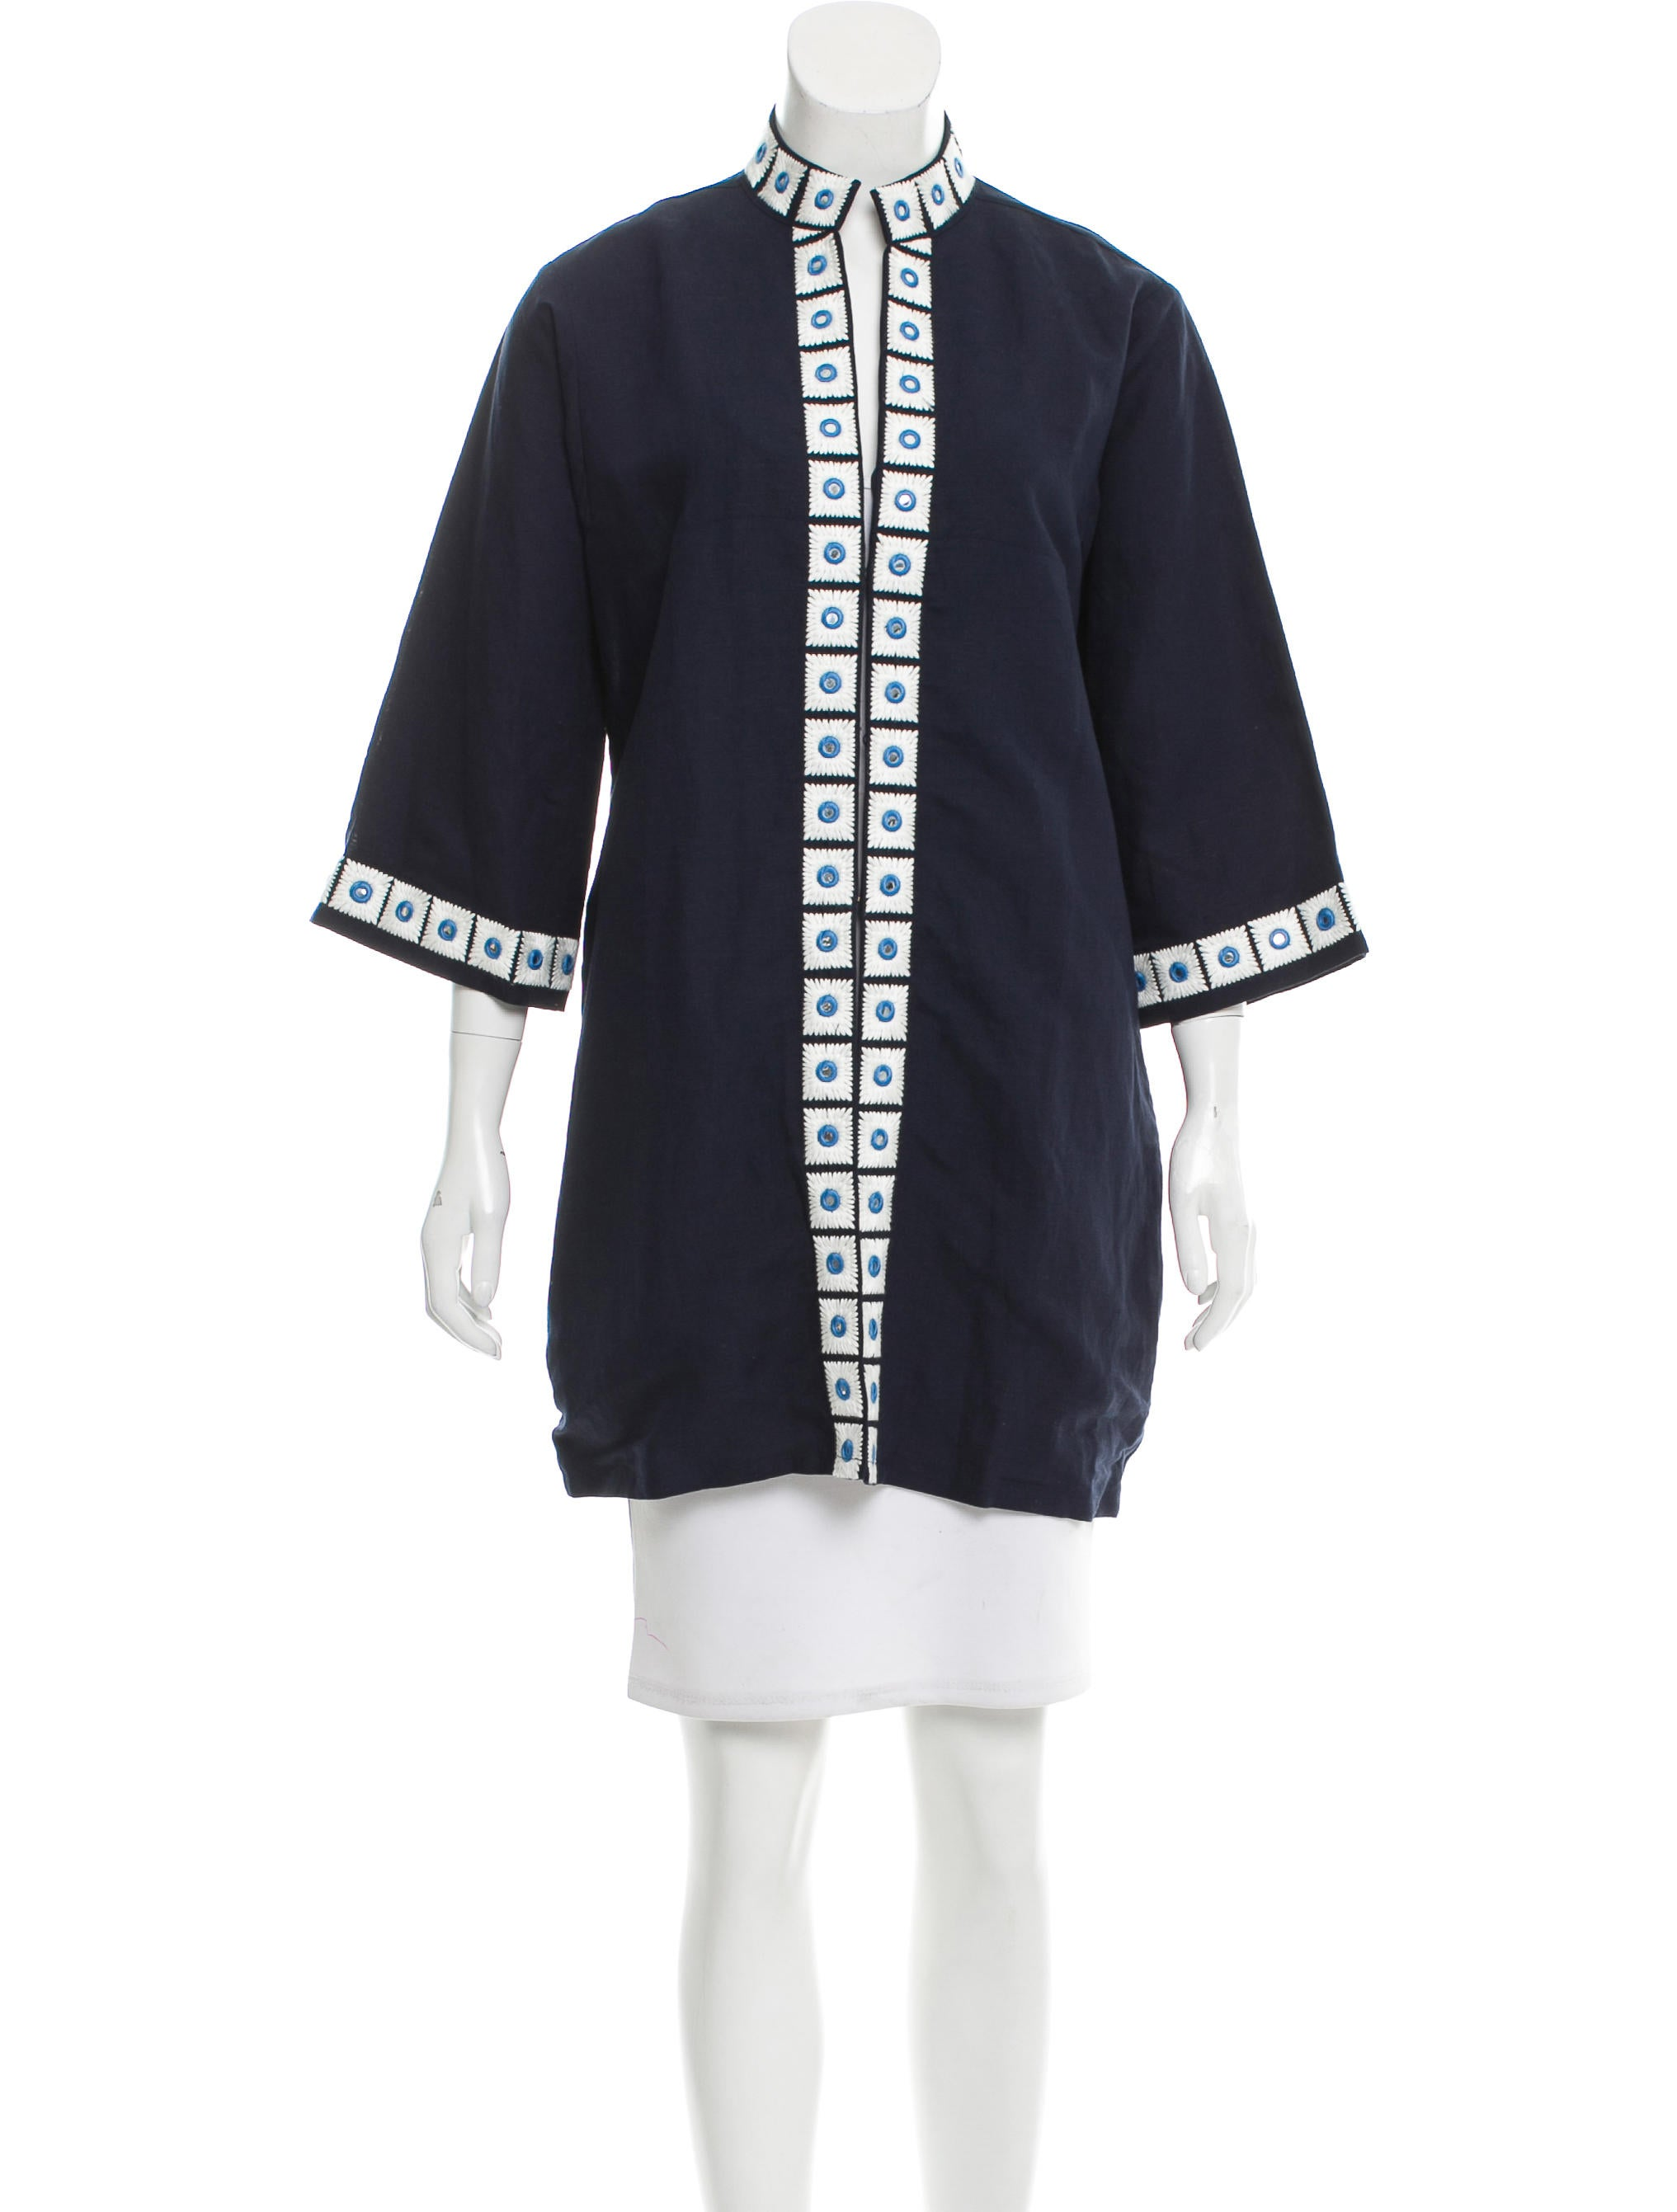 Tory Burch Embroidered Long Jacket - Clothing - WTO97730 | The RealReal